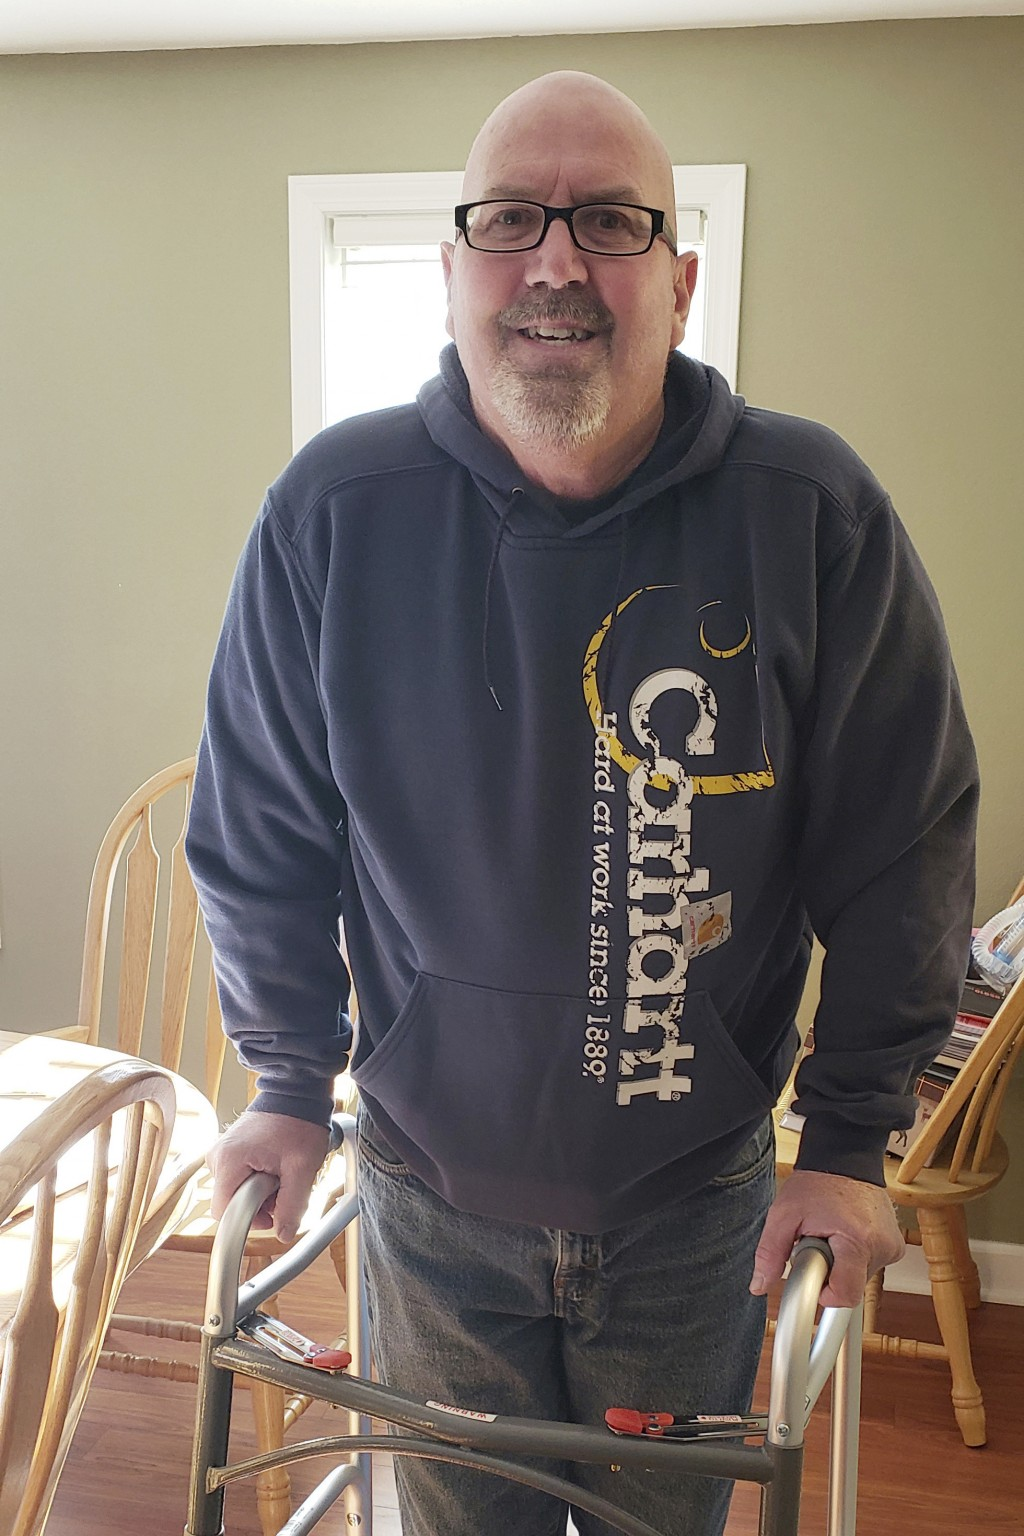 This April 21, 2020 photo provided by Elizabeth Dobbels shows her husband, Scott, at their home in Silvis, Ill. Dobbels spent 17 days in the hospital,...